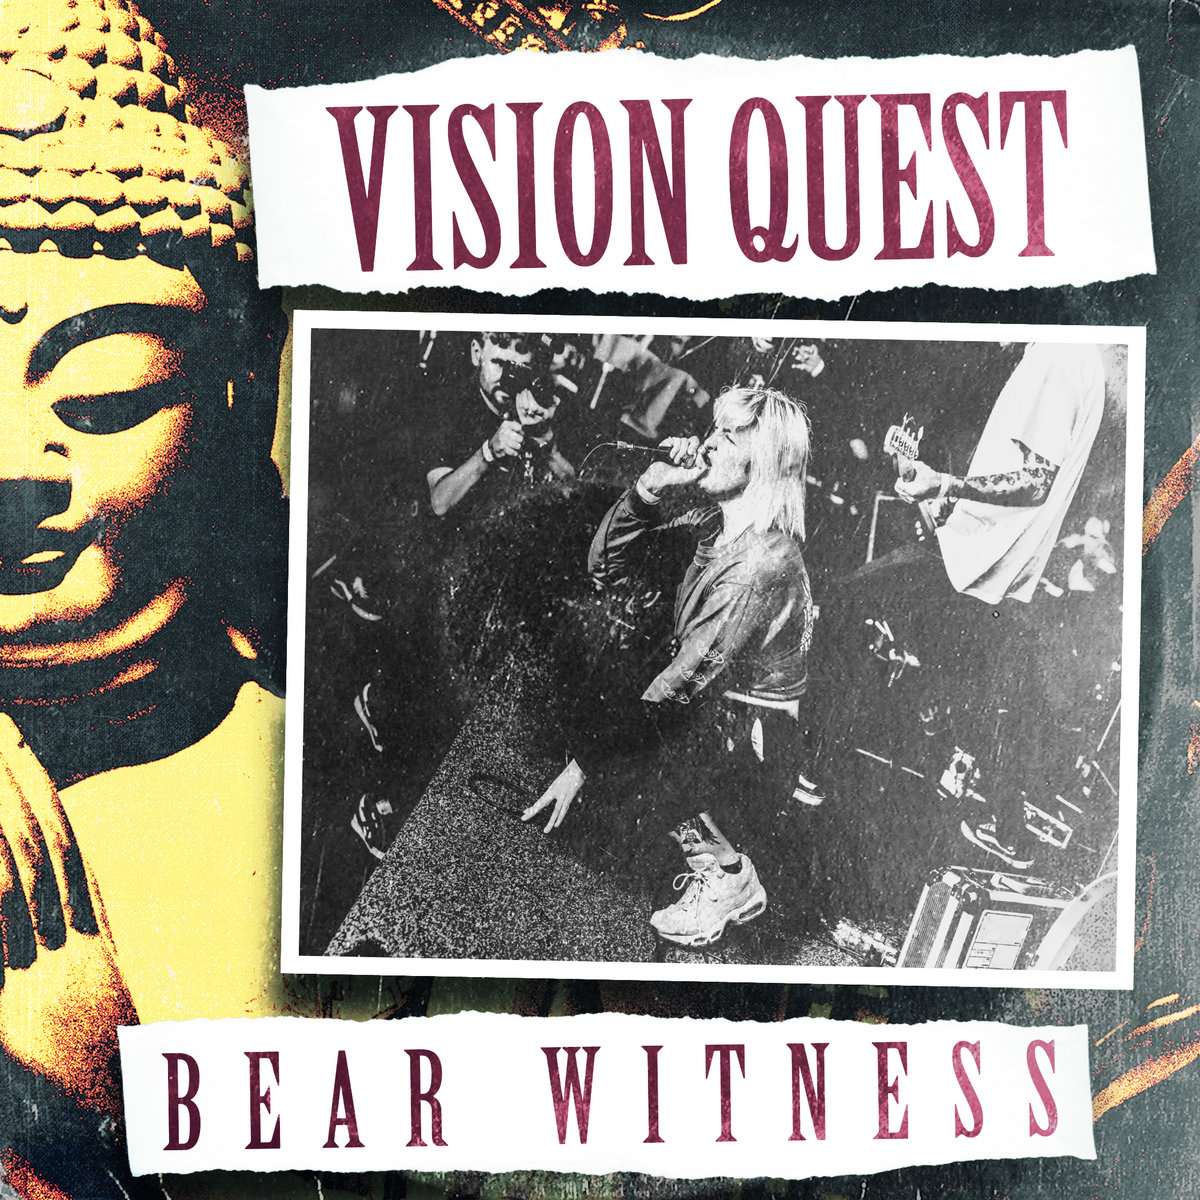 Vision Quest - Bear Witness 7